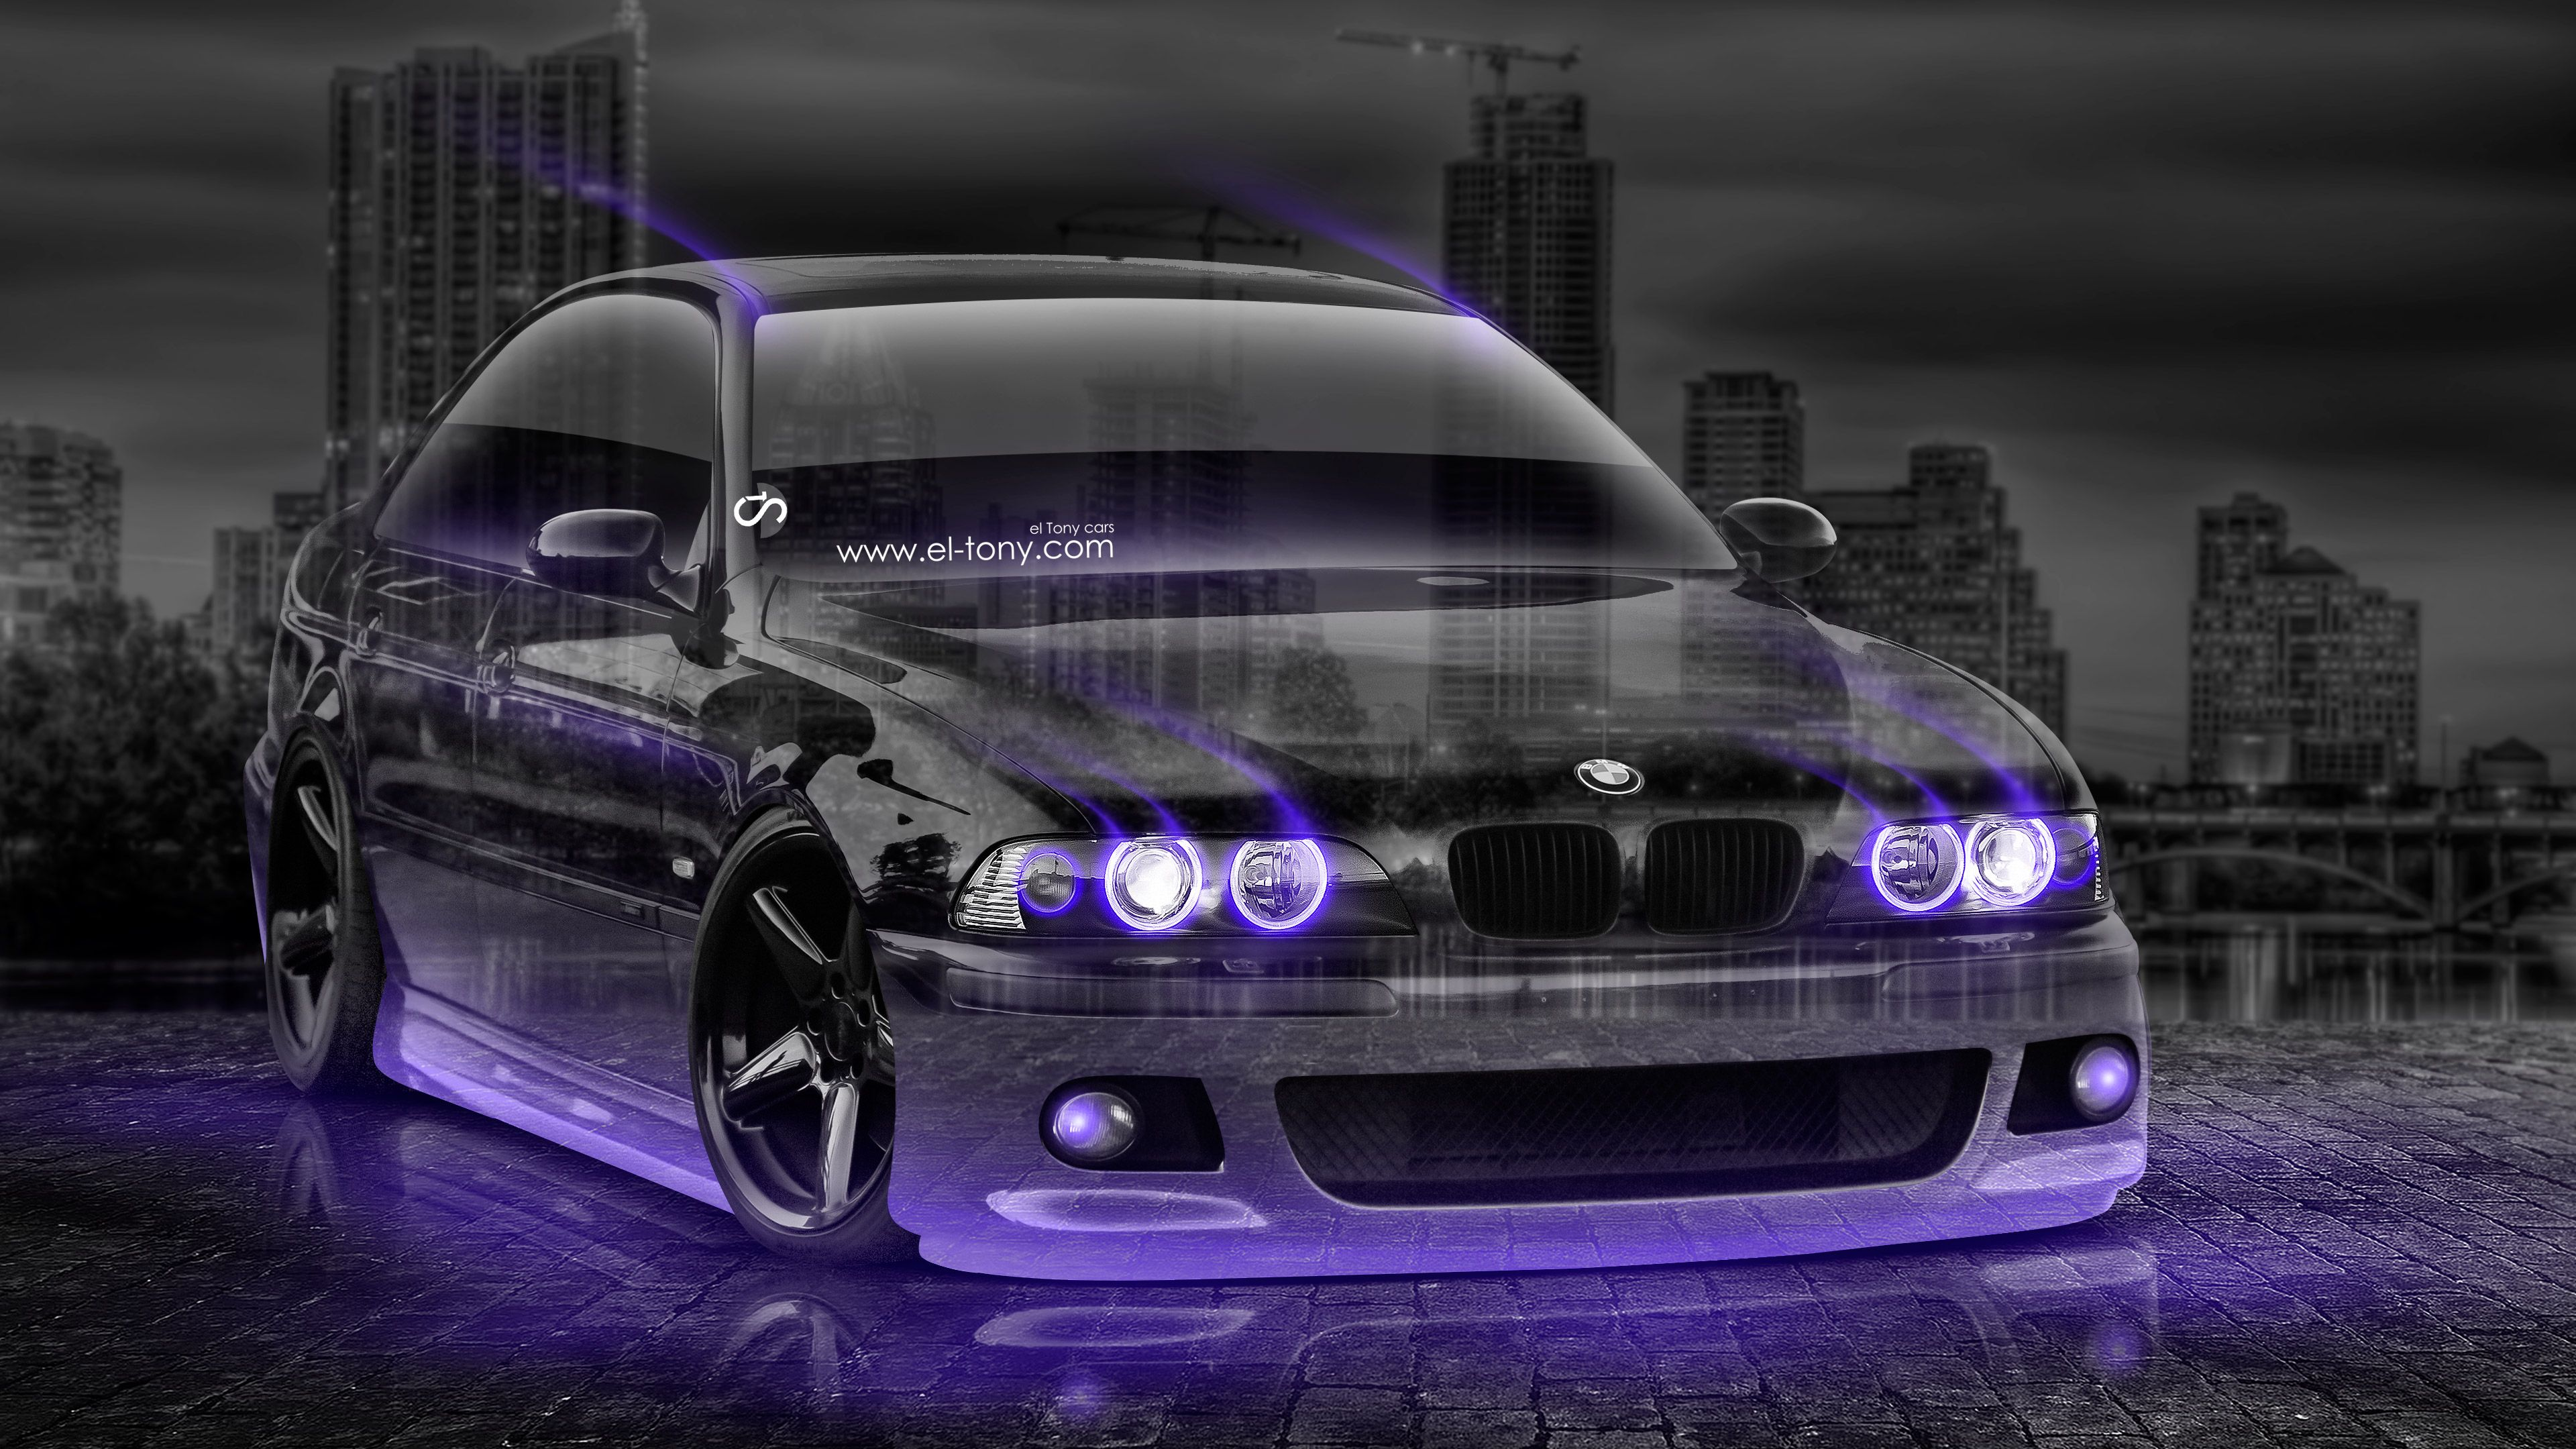 Attrayant BMW M6 Hamann Tuning 3D Crystal City Car 2015 Violet Neon Colors HD Wallpapers Design By Tony Kokhan Www.el Tony.com Image  | El Tony Cars | Pinterest | City ...